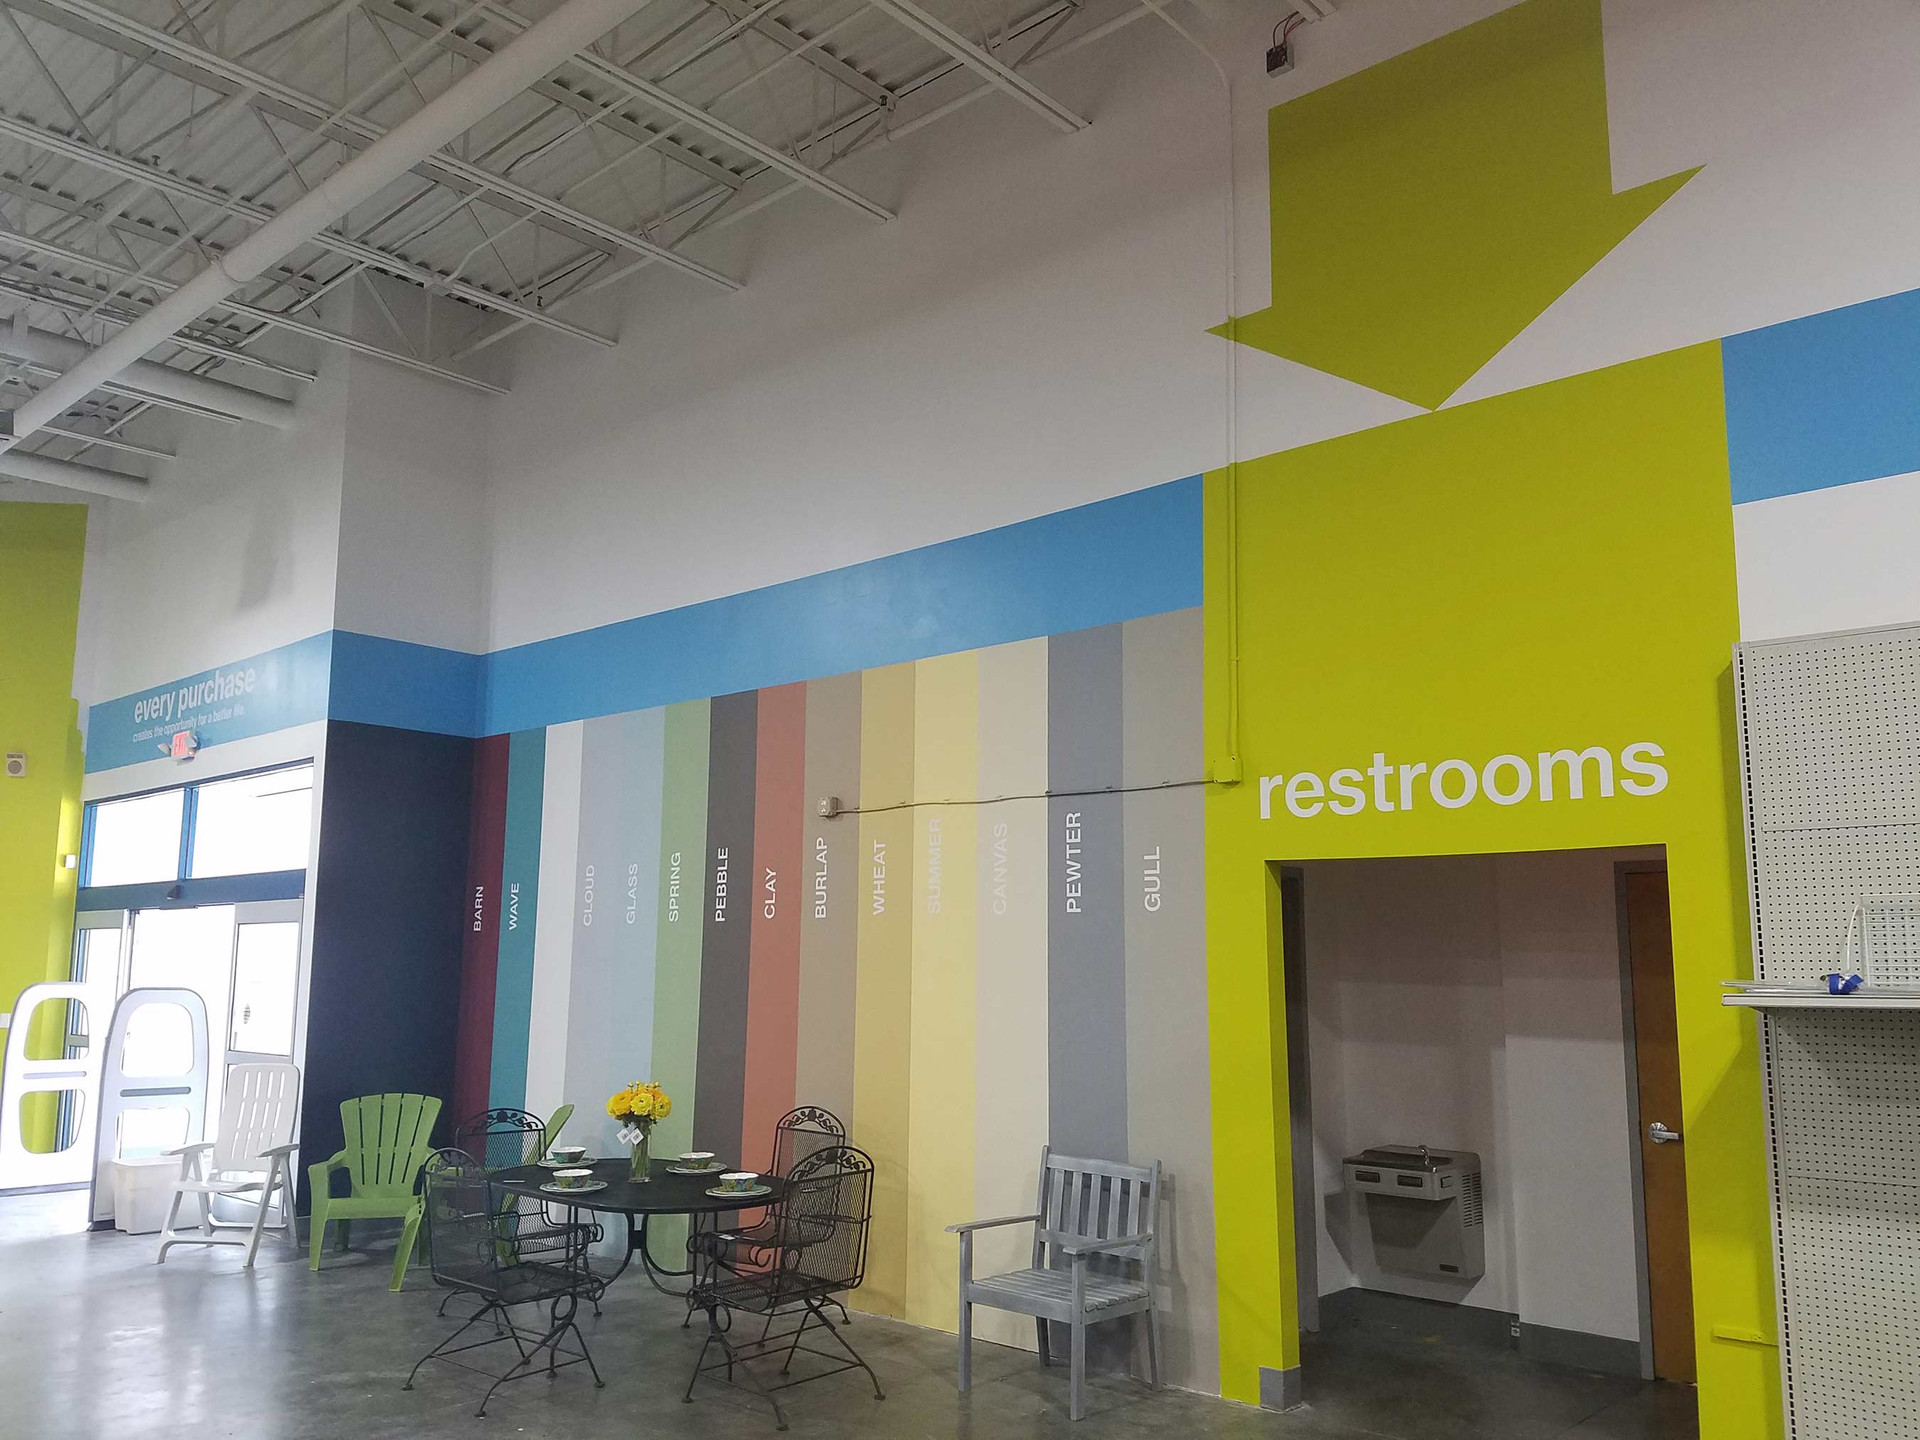 paint color reference and restroom